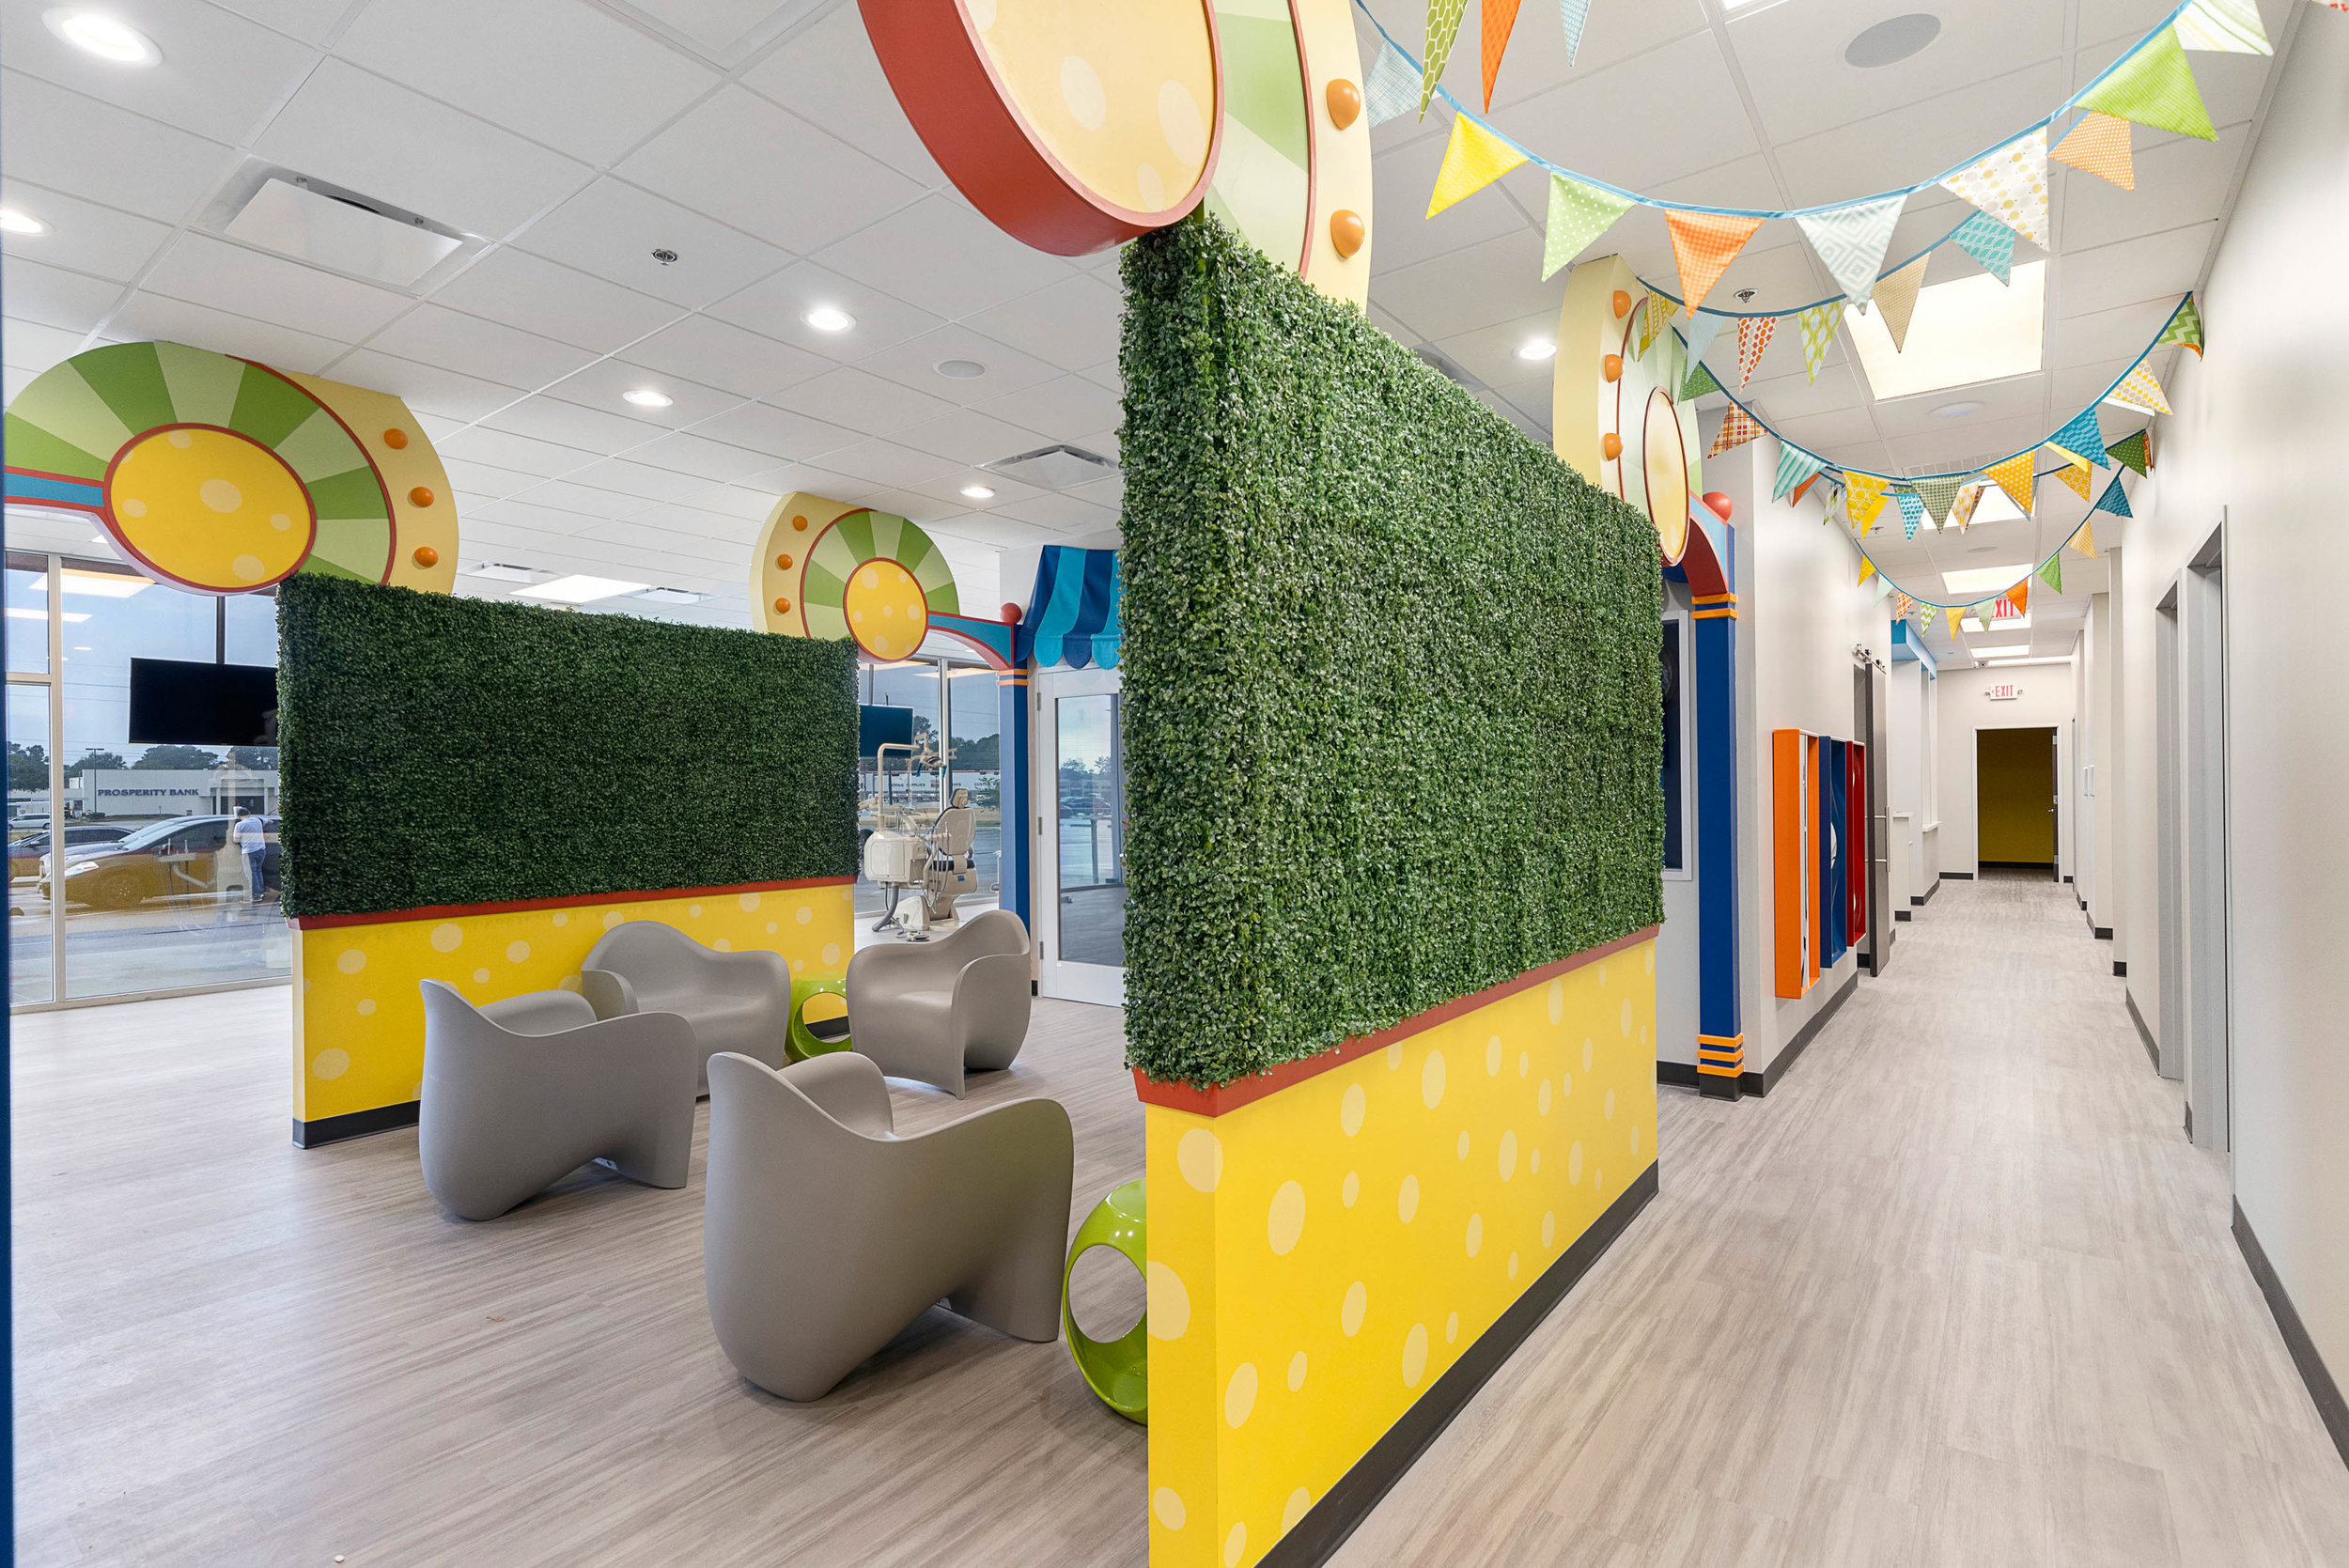 PEDIATRIC DENTIST OFFICE WAITING ROOM HOUSTON TEXAS 77008.jpg